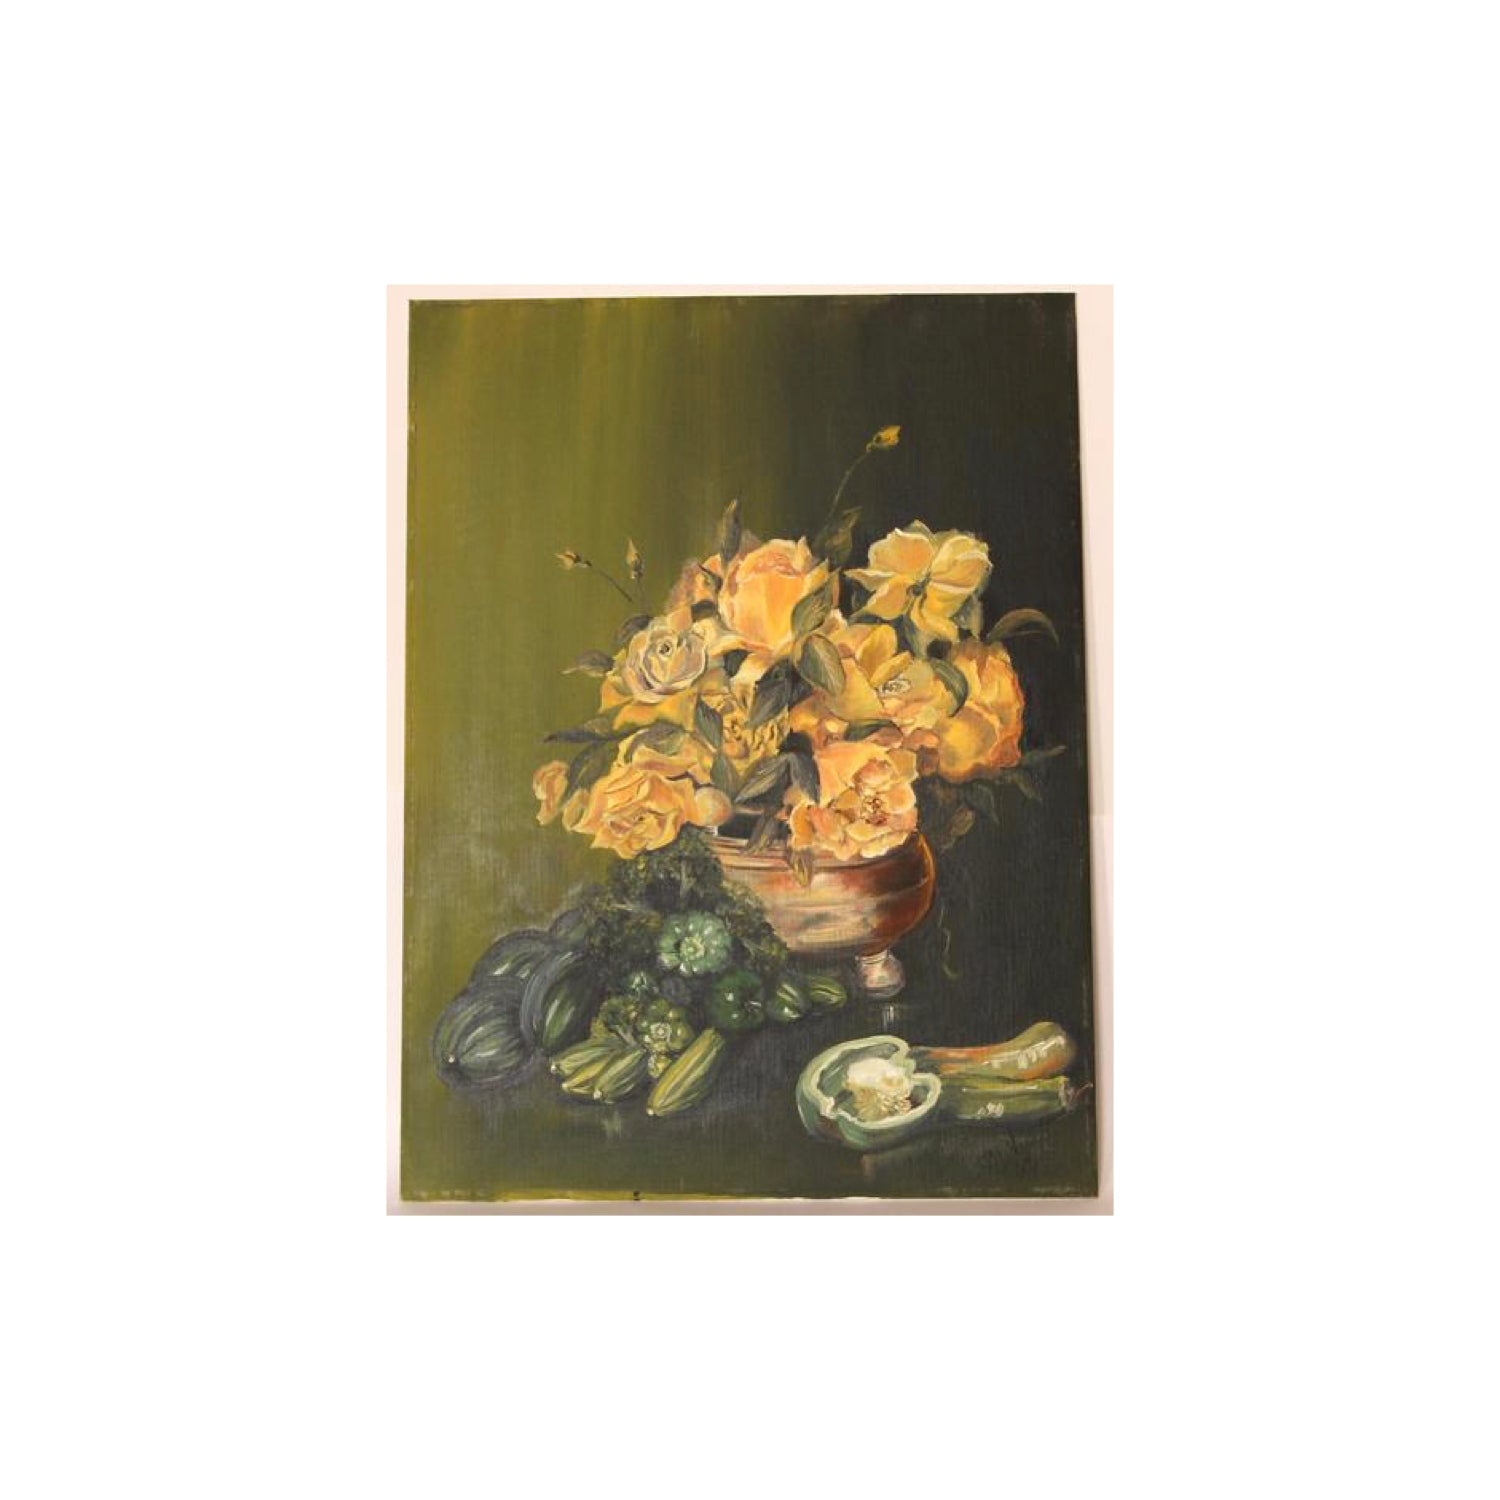 Vintage Oil Painting Still life by BL Nouss 1969